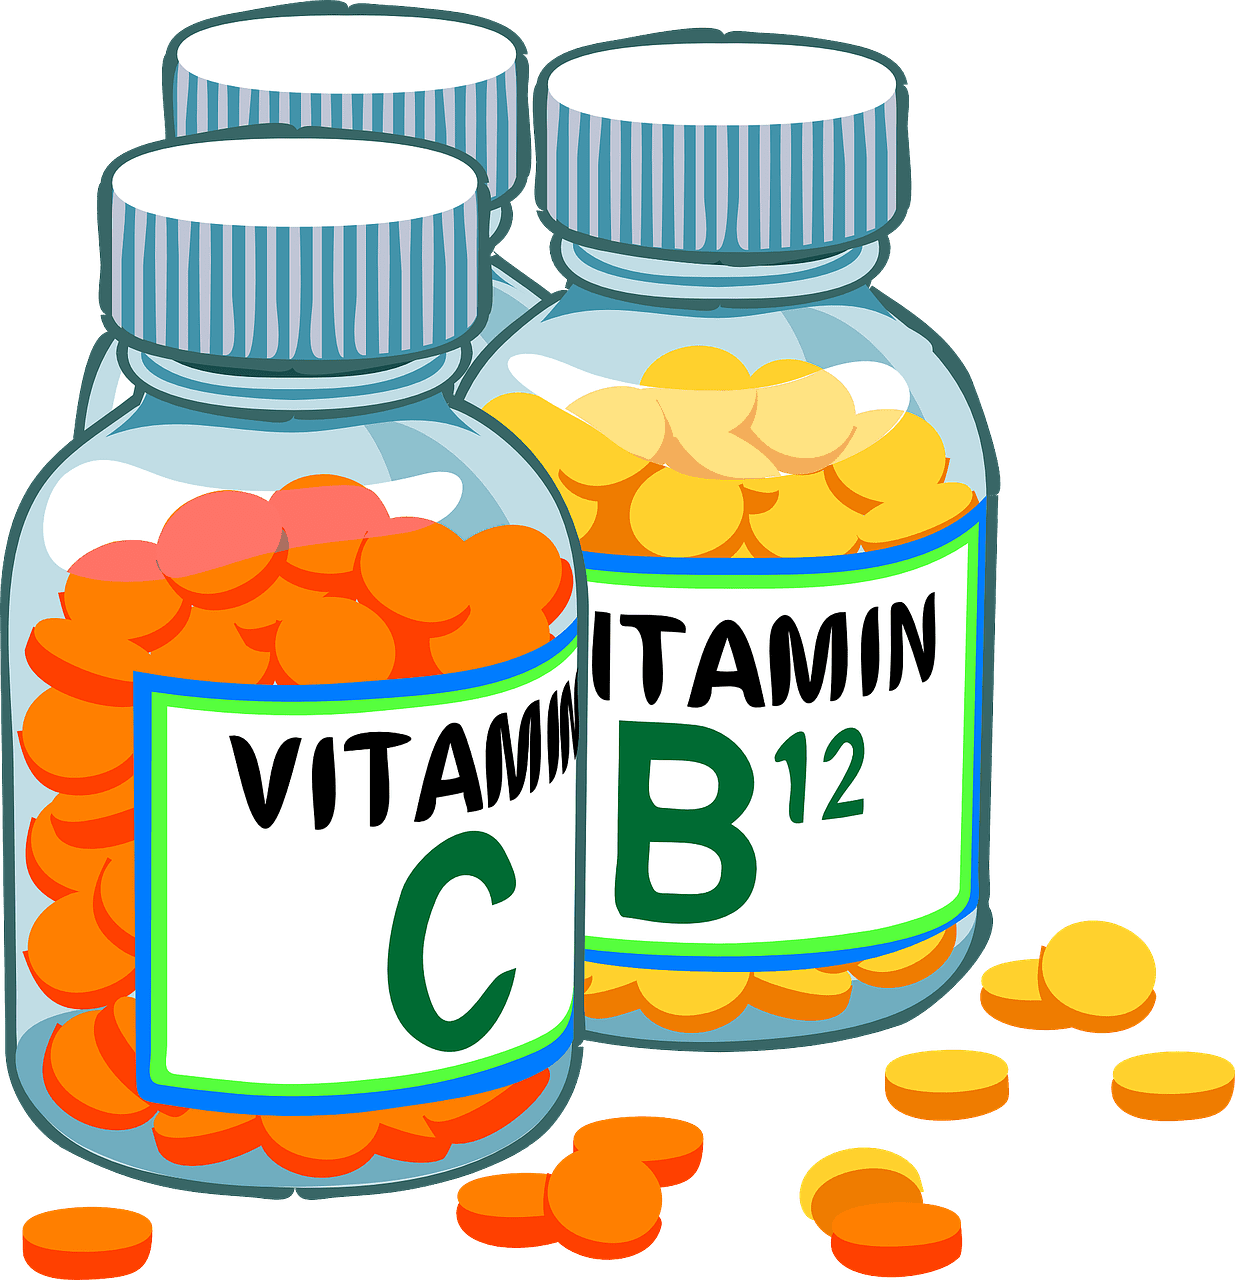 Health & Wellness: Vitamin Metabolism